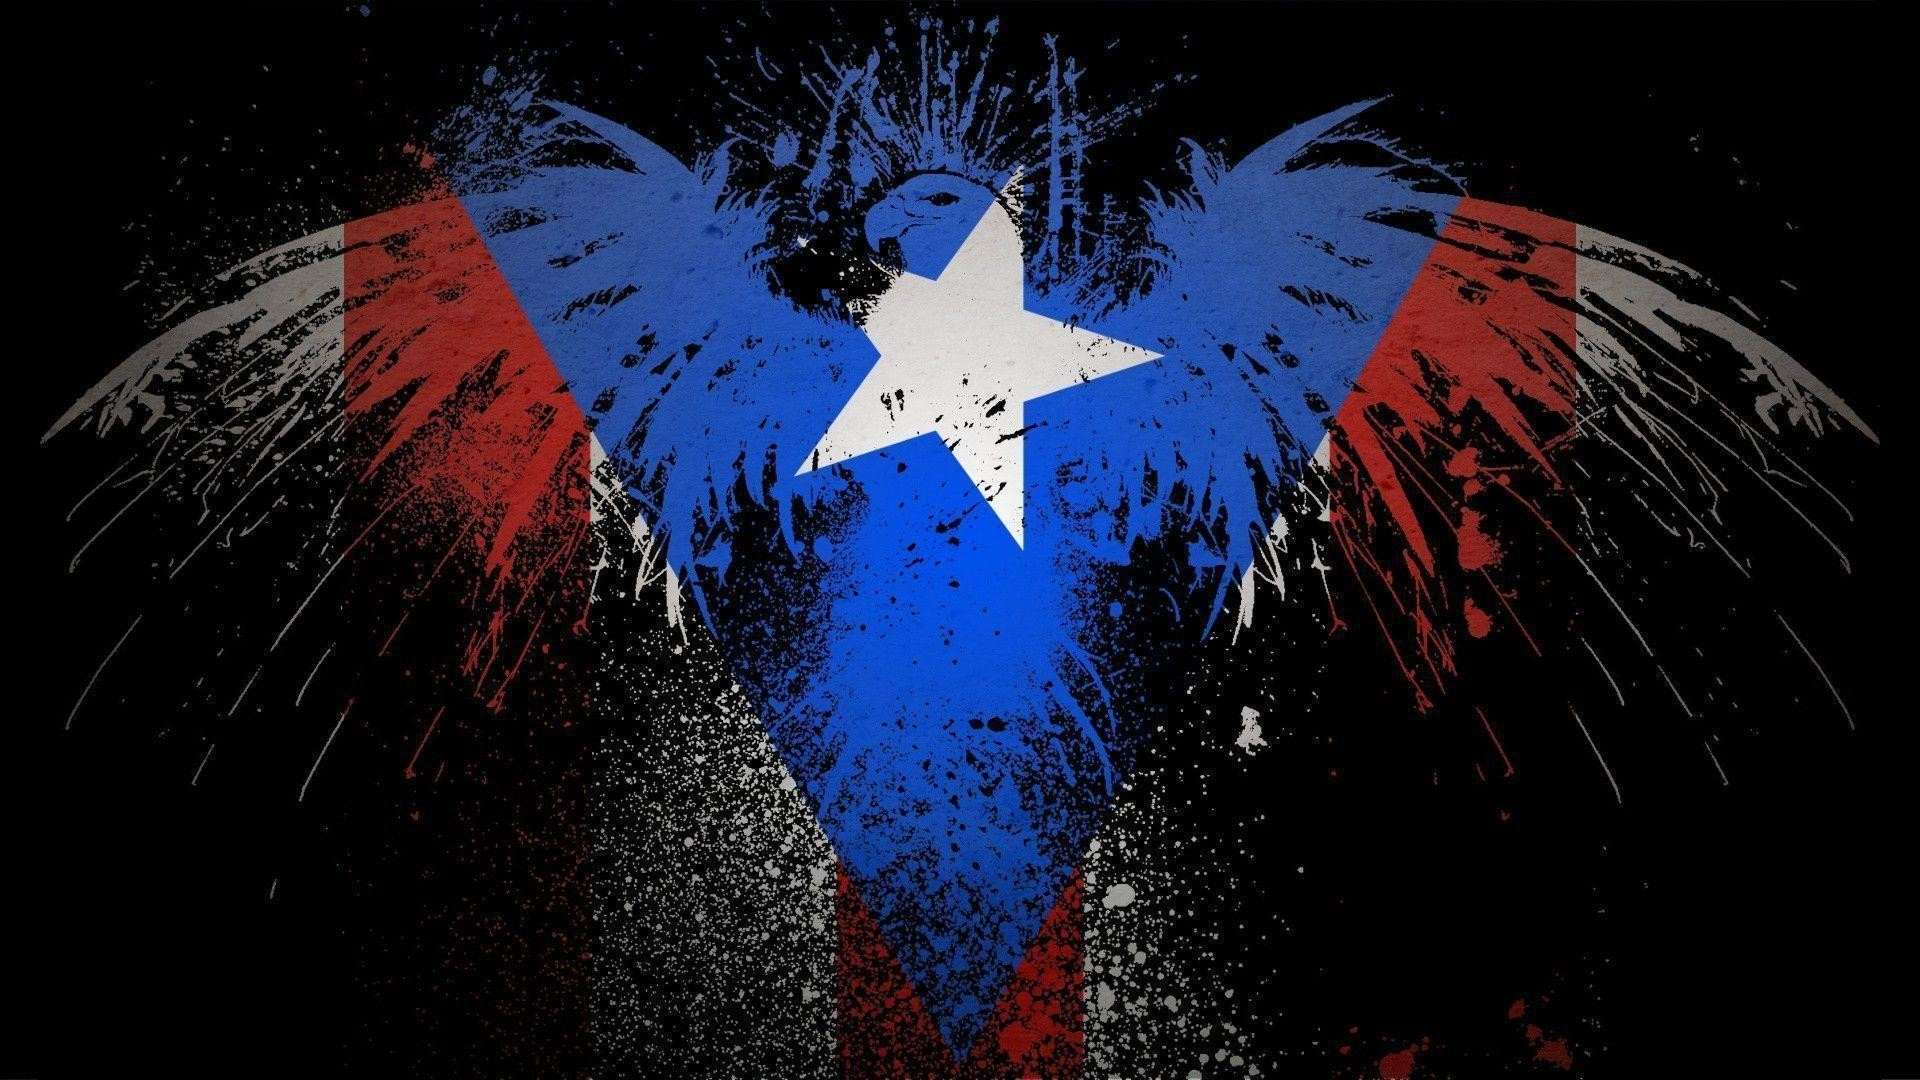 65 Colorado Flag Wallpapers On Wallpaperplay Hd Puerto Rican